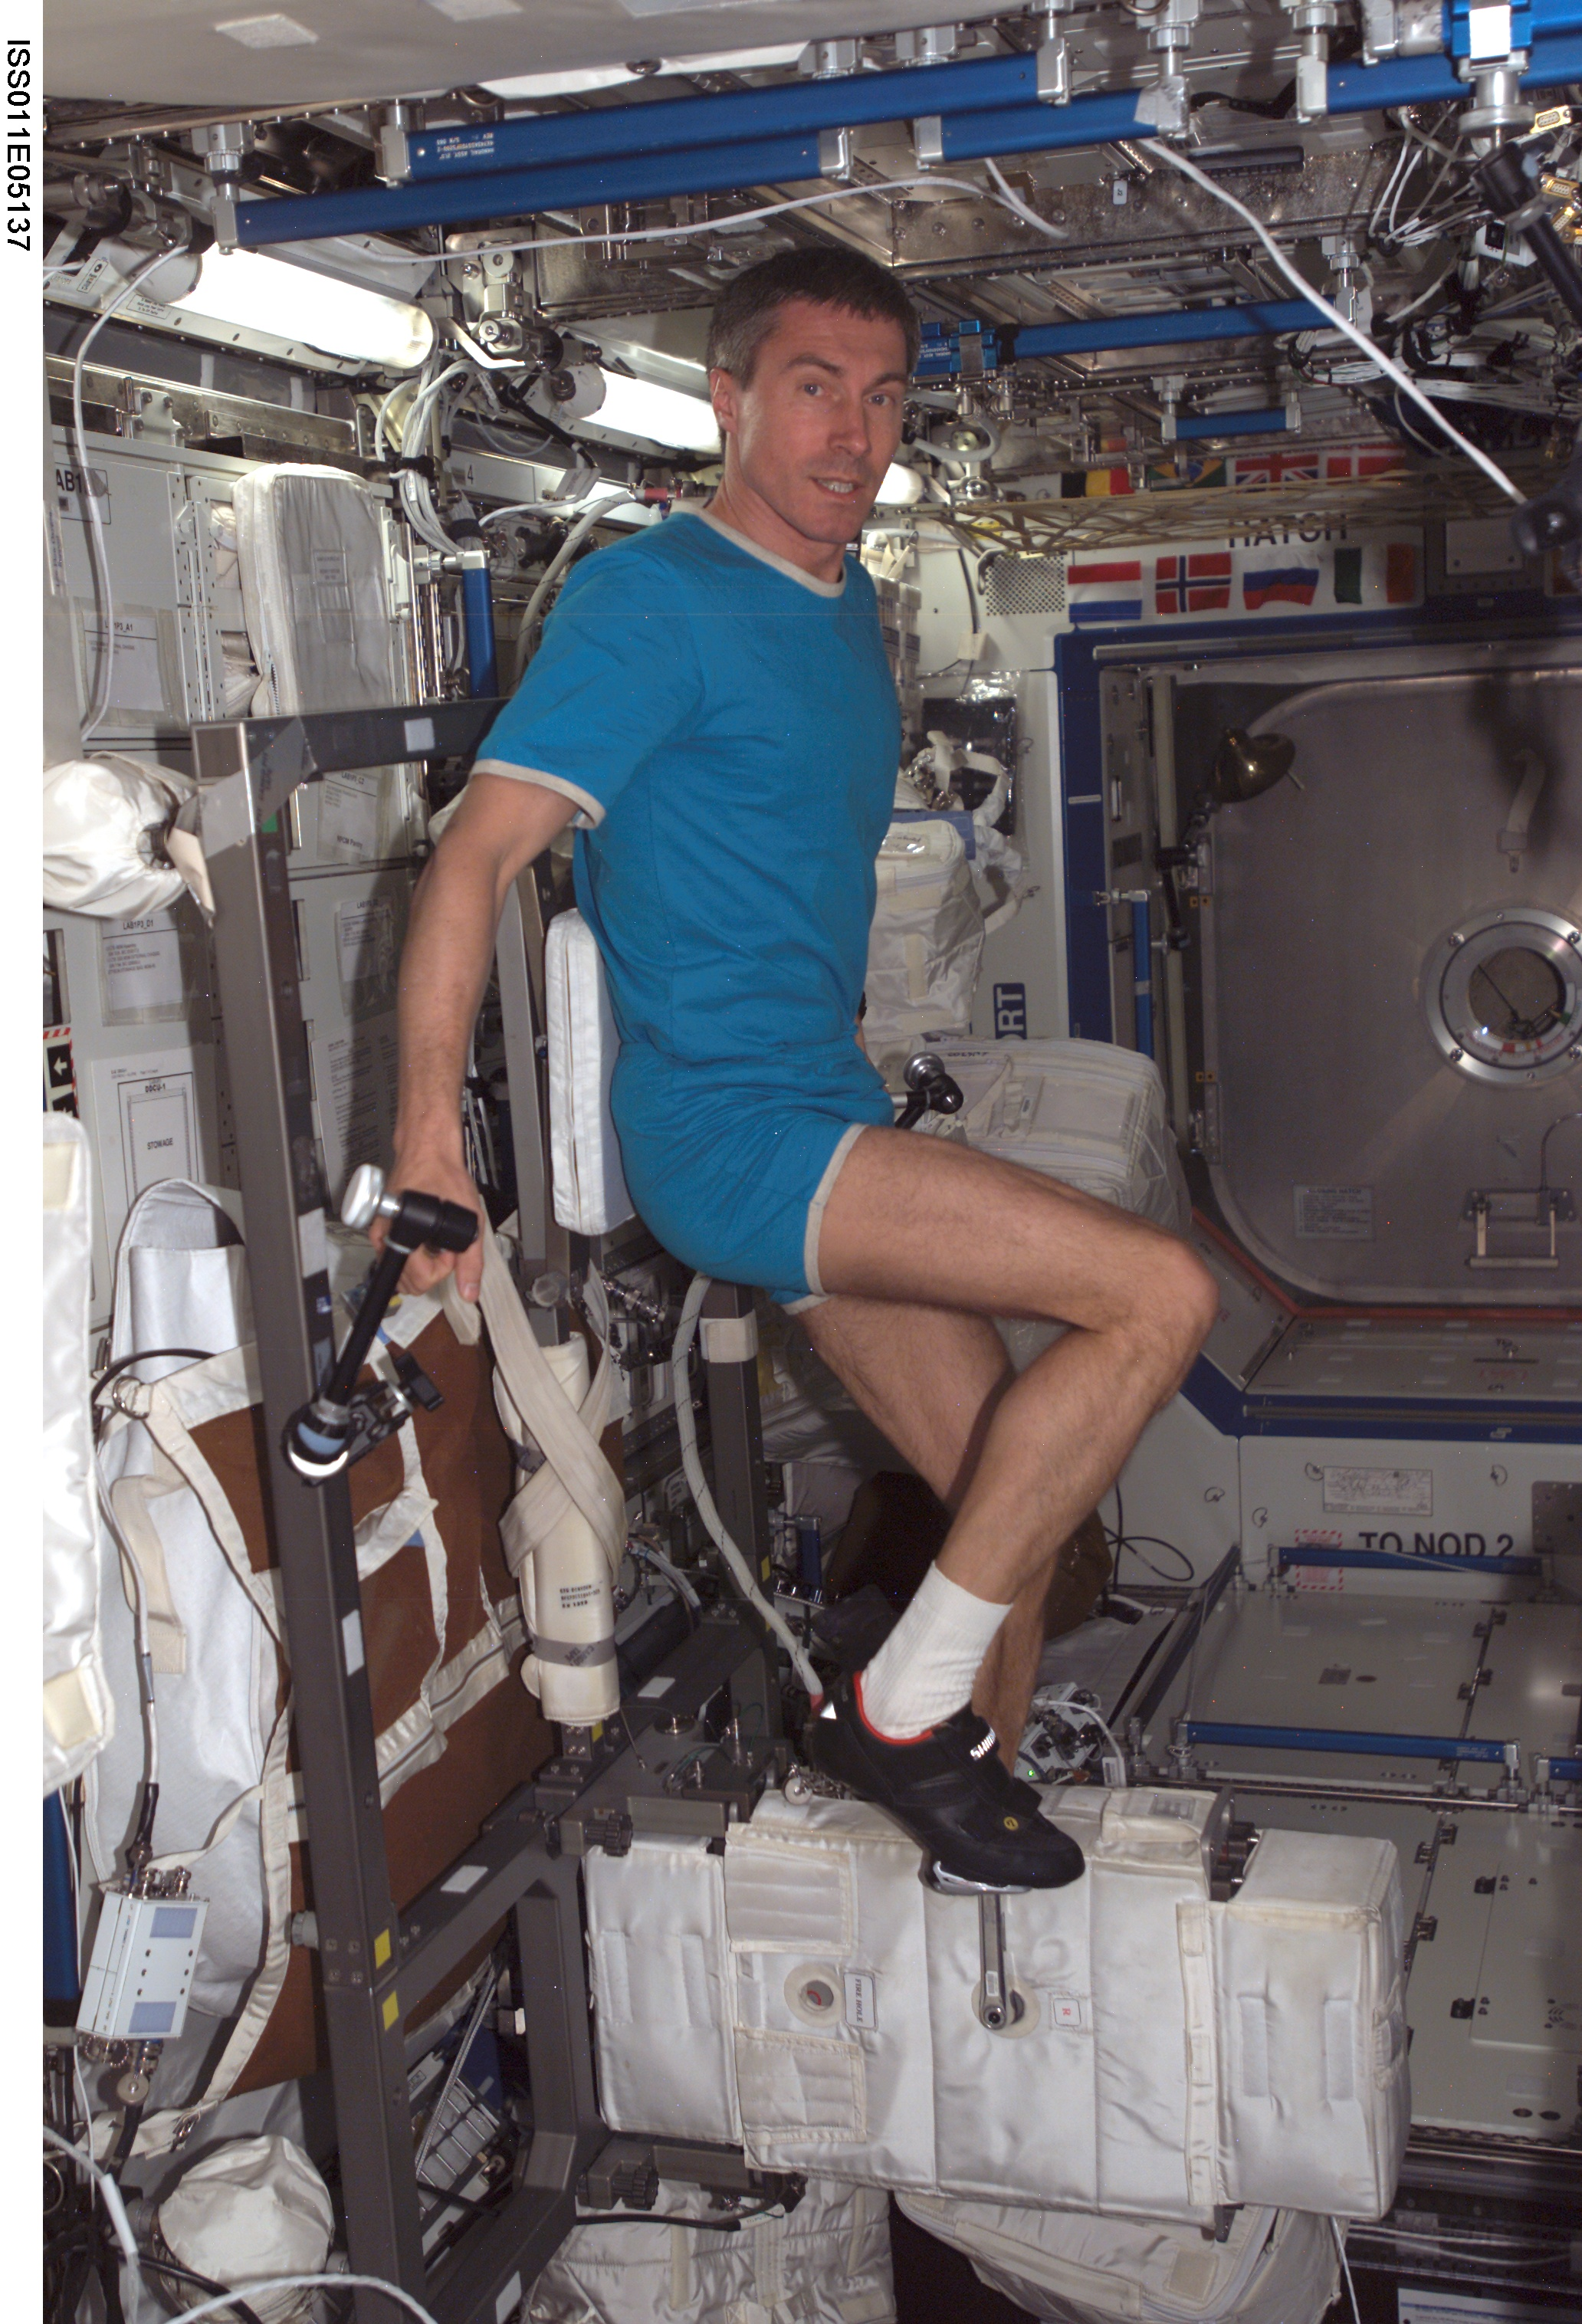 Nasa Cycling In Space